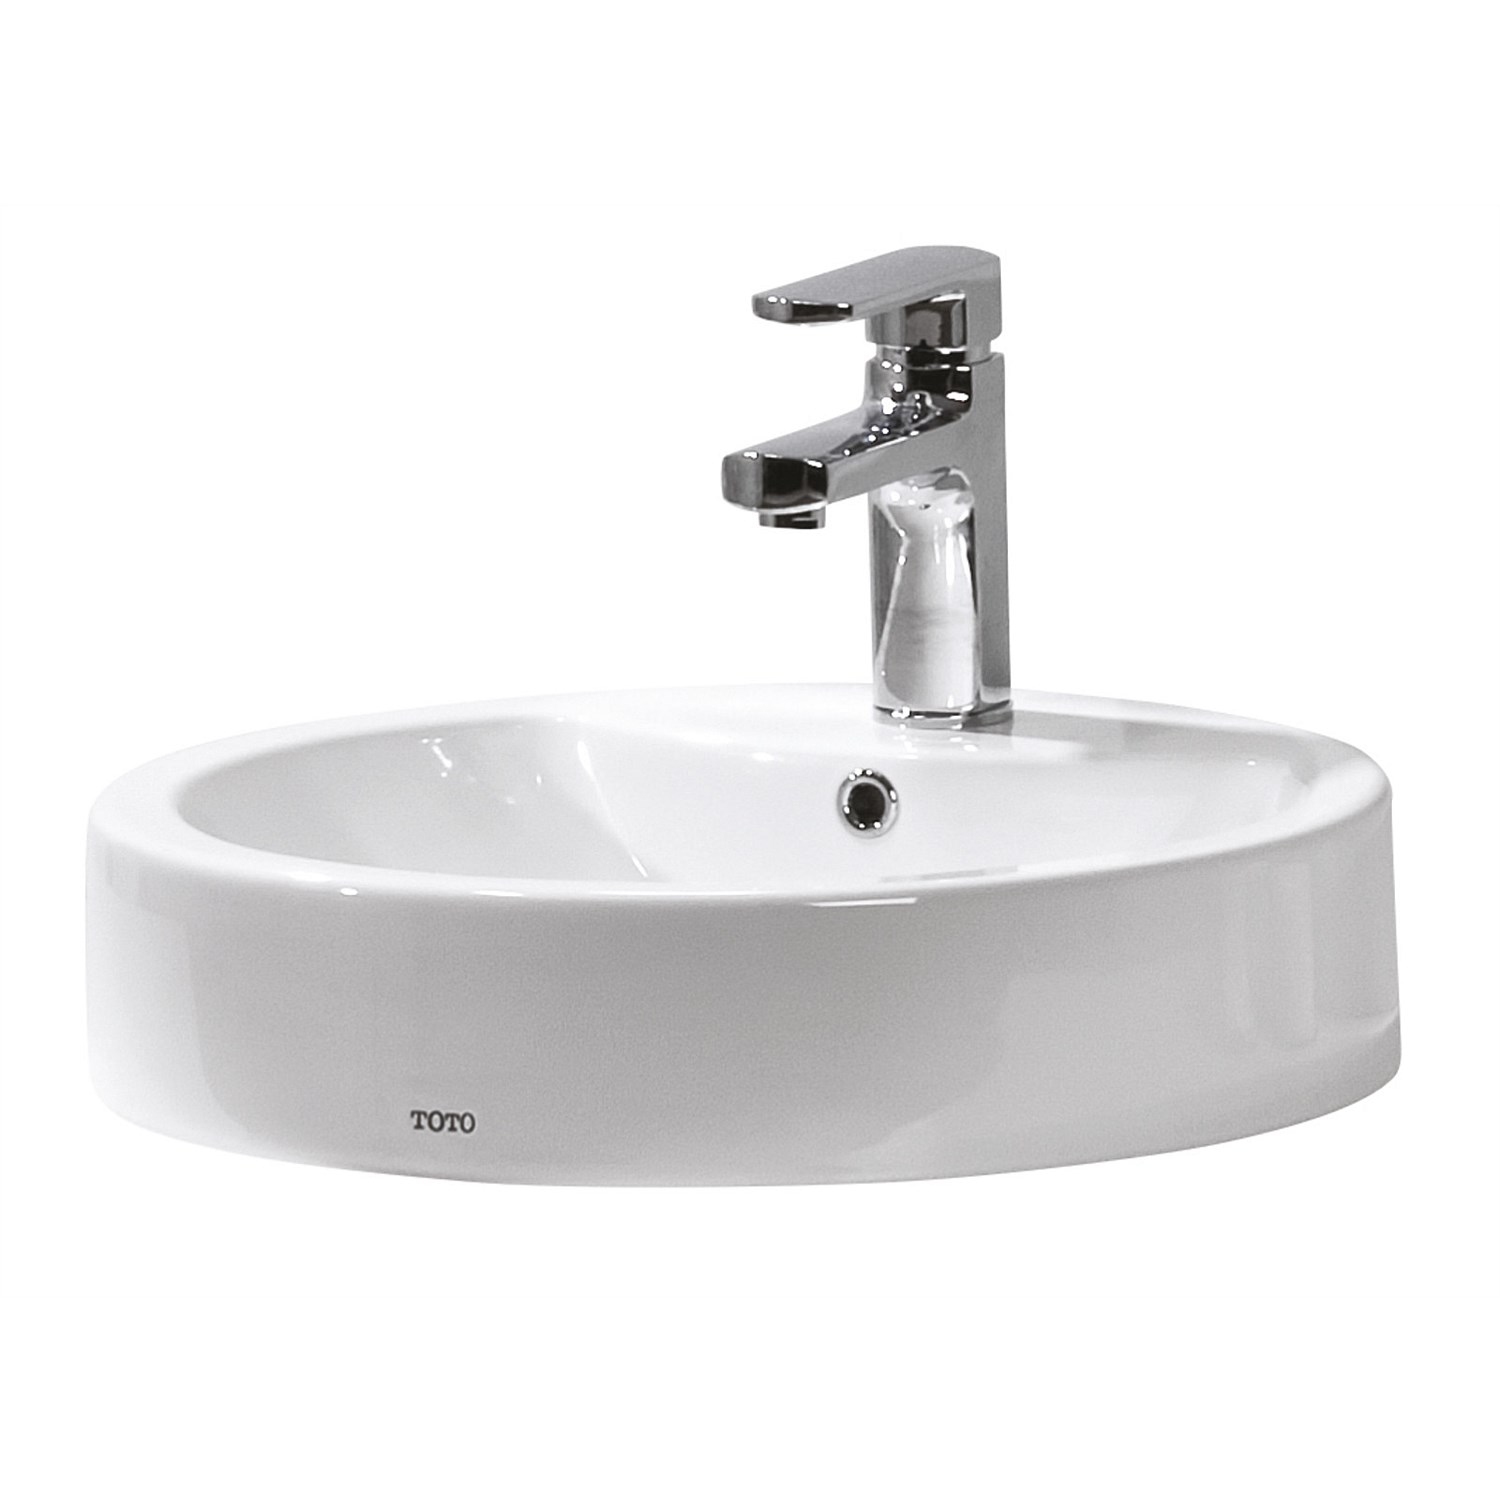 Basins | Plumbing World - Toto Santo Round Counter Top Basin